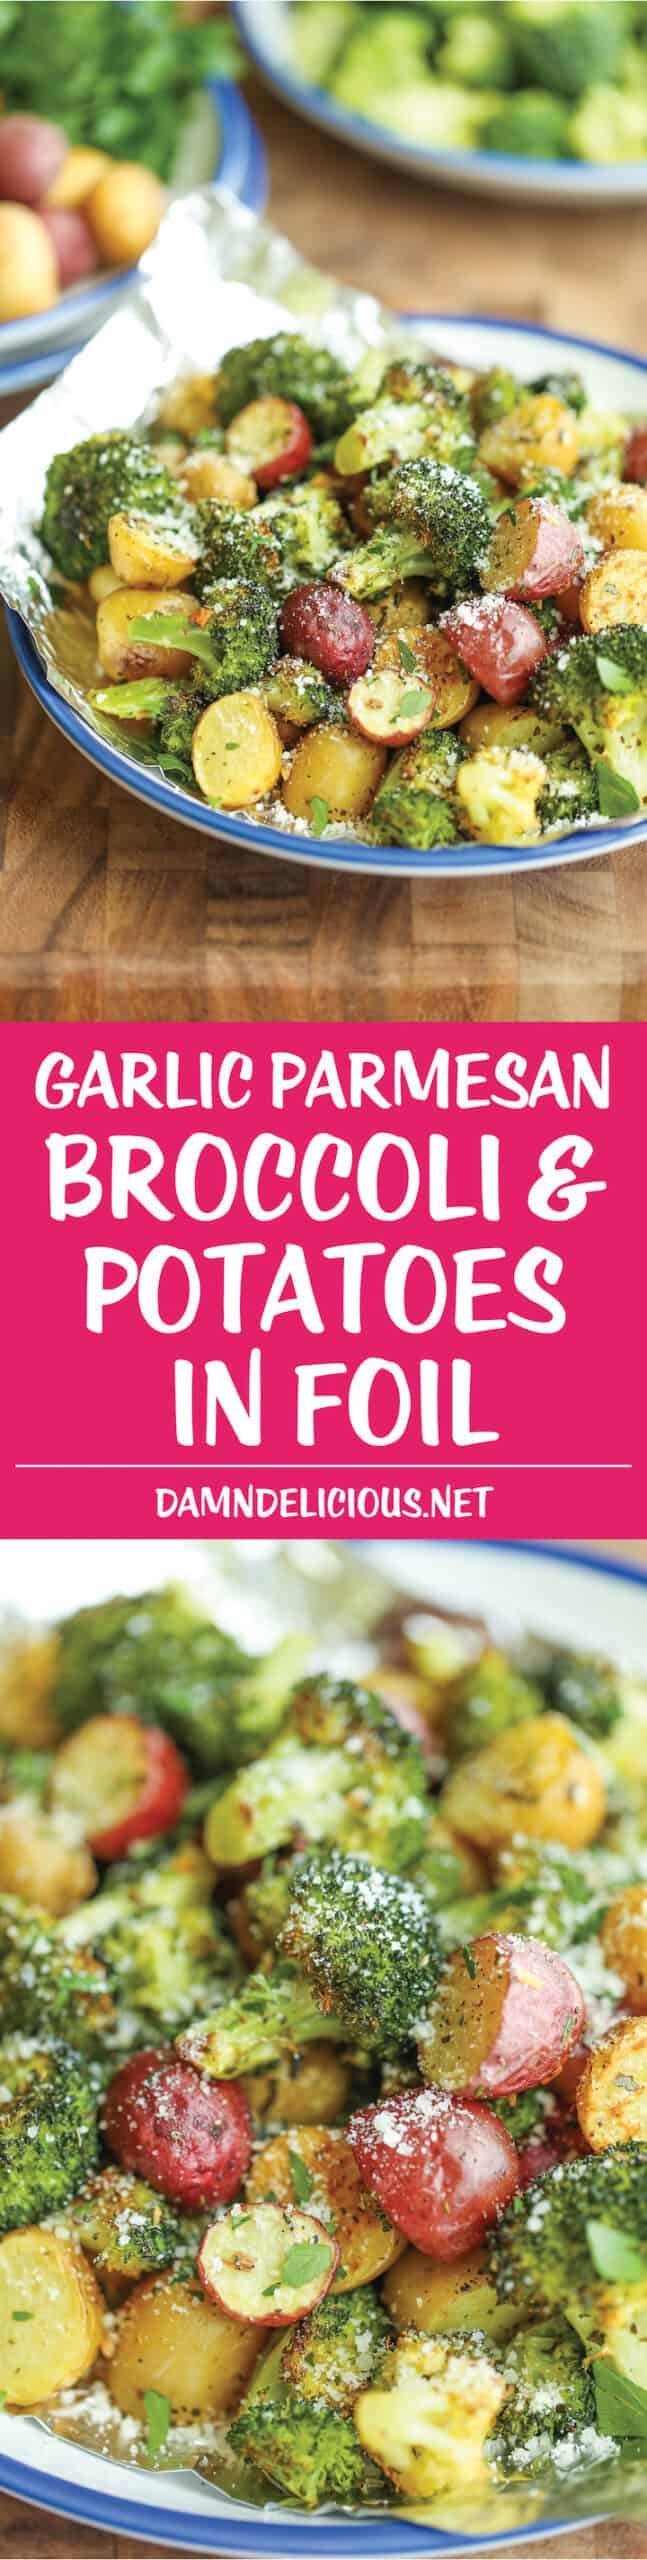 Christmas Side Dishes - broccoli and potatoes in foil